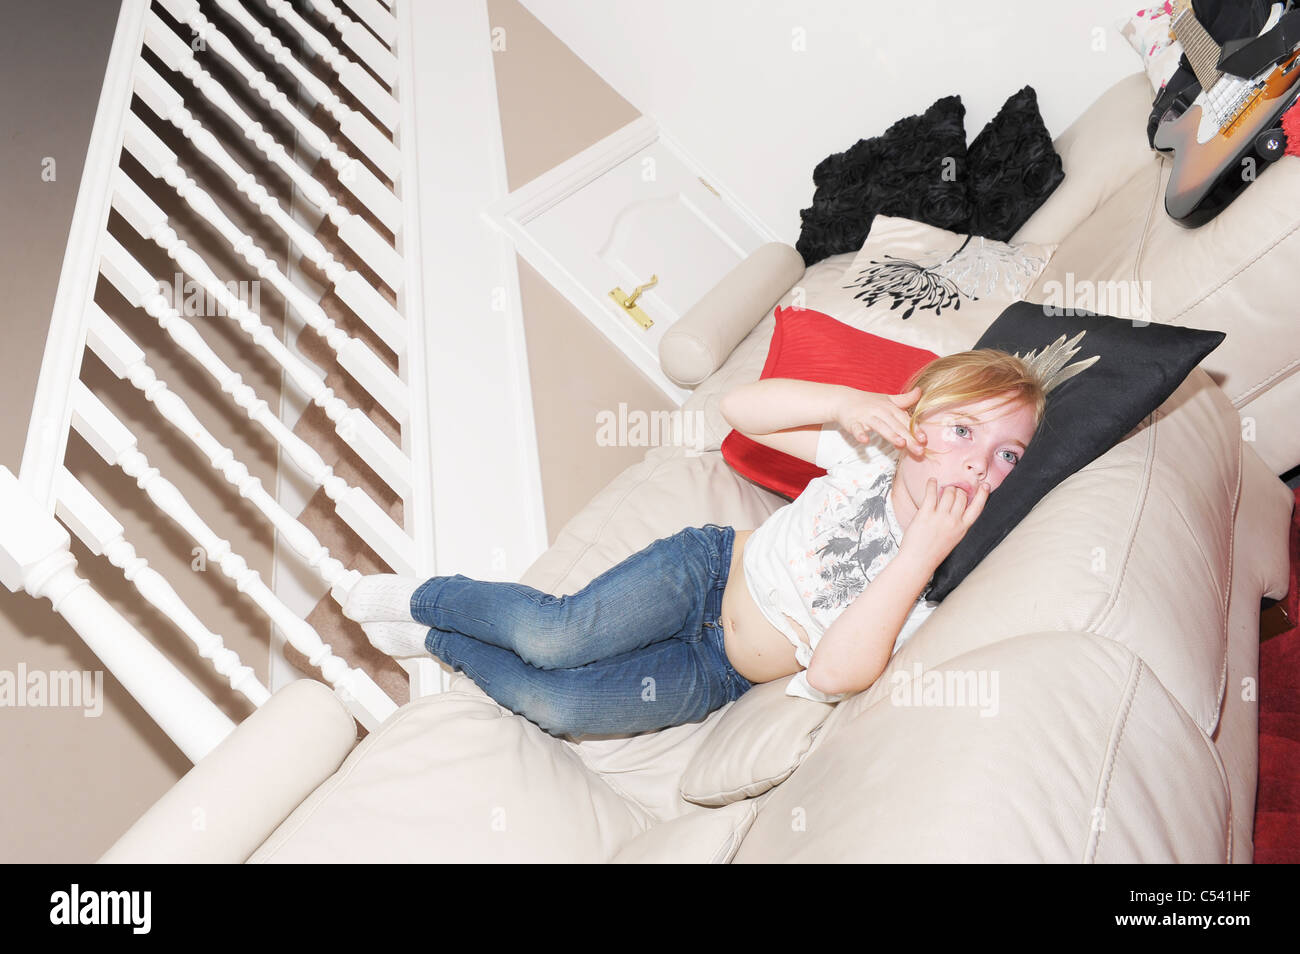 young girl laid on sofa, relaxing - Stock Image